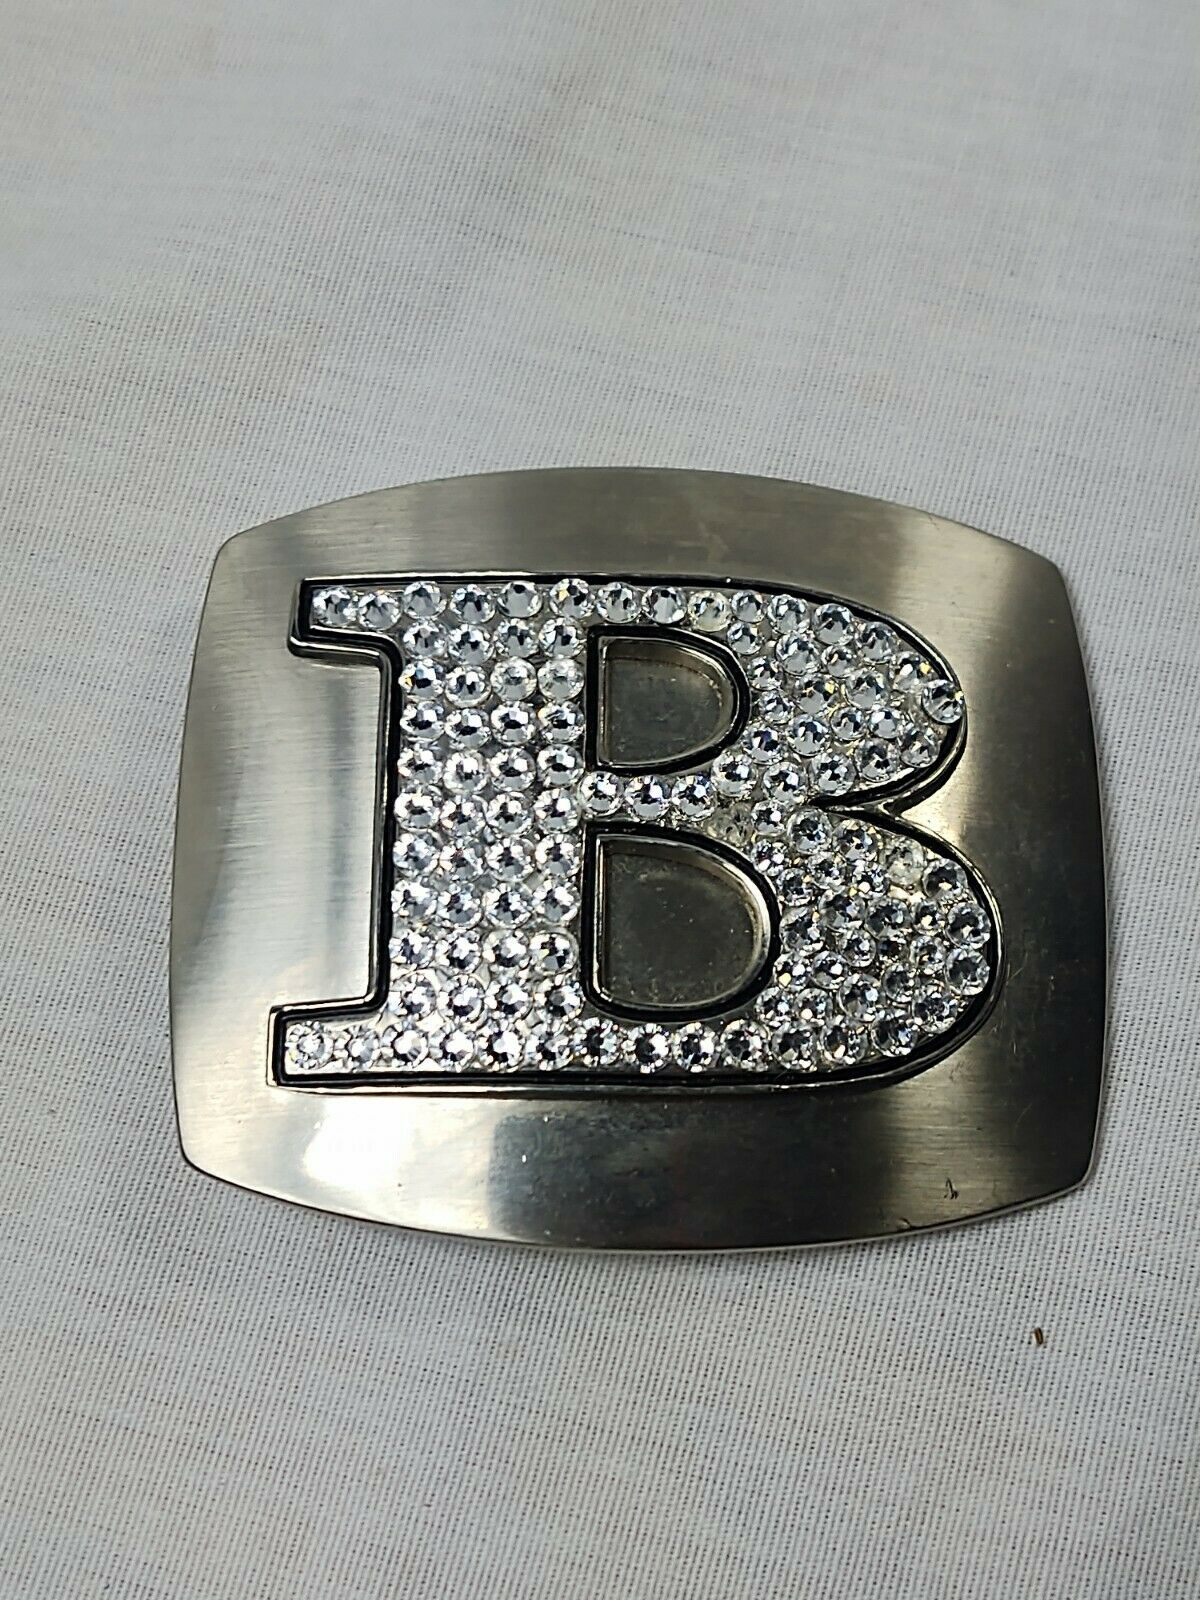 Letter B silver belt buckle with rhinestones